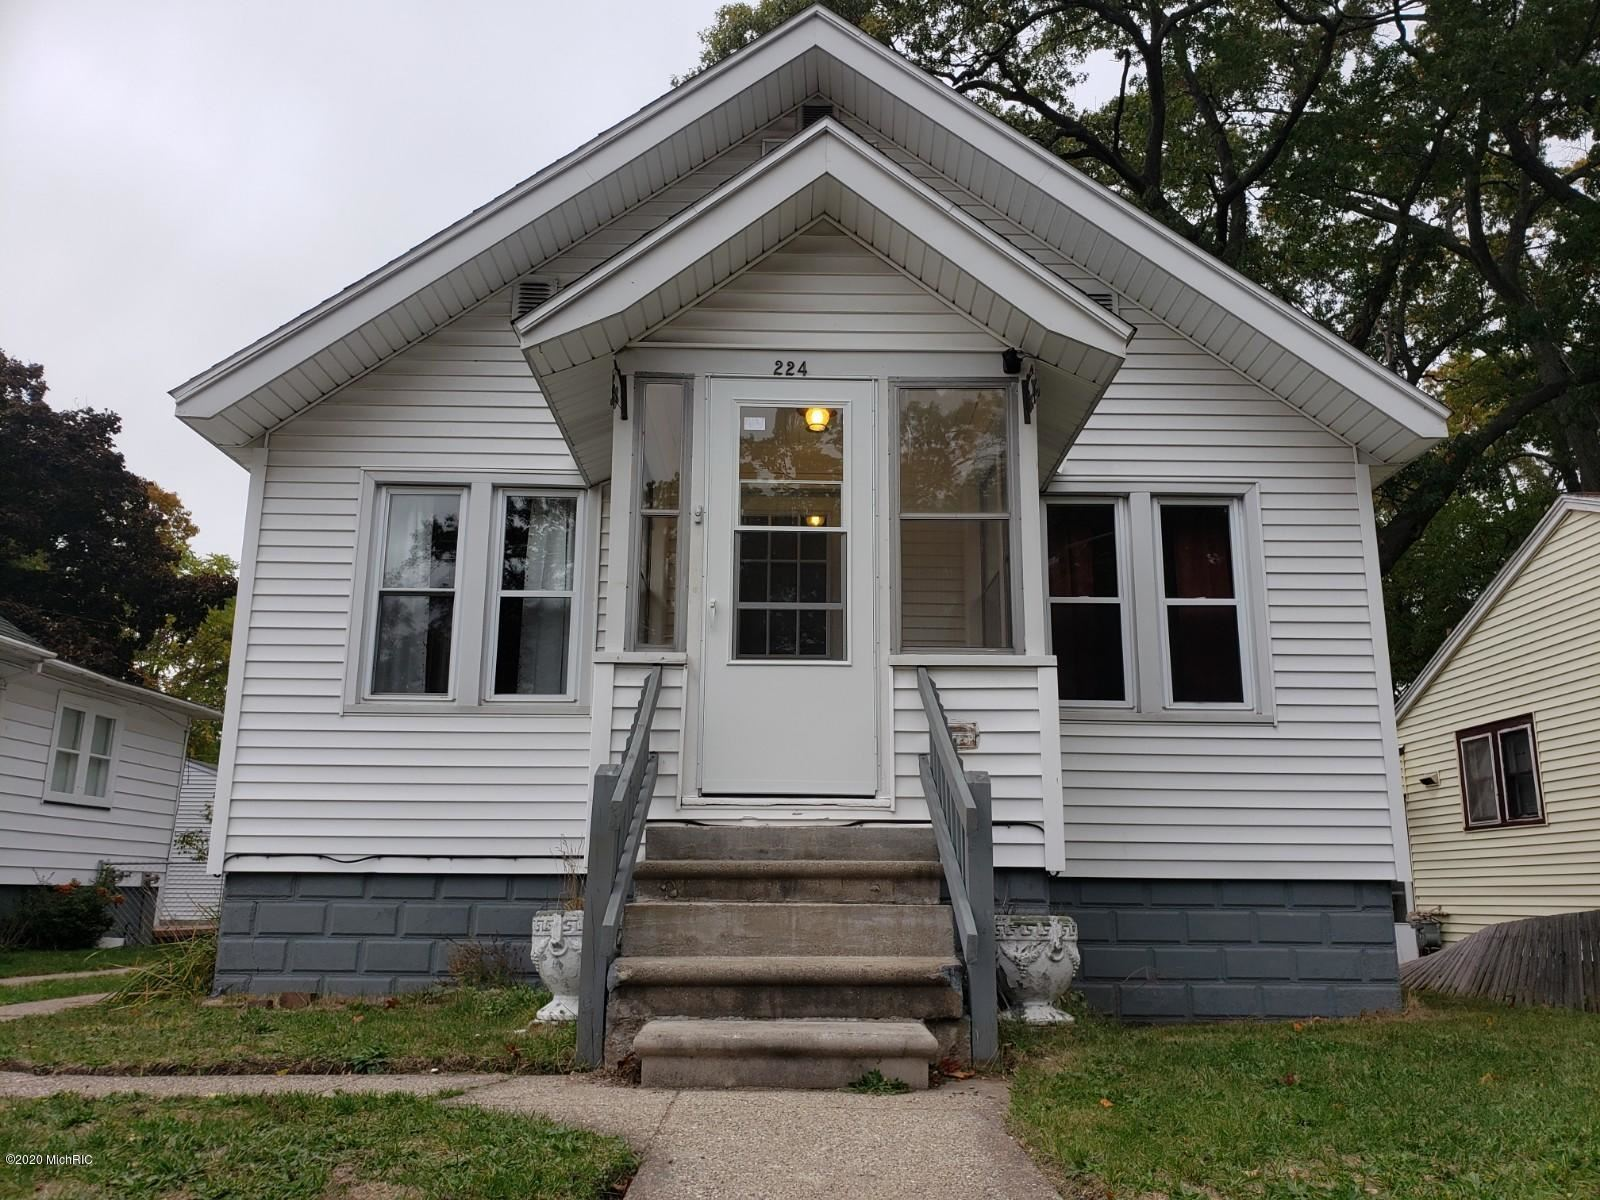 224 E Lincoln Avenue, Muskegon Heights, MI 49444 - MLS#: 20043577